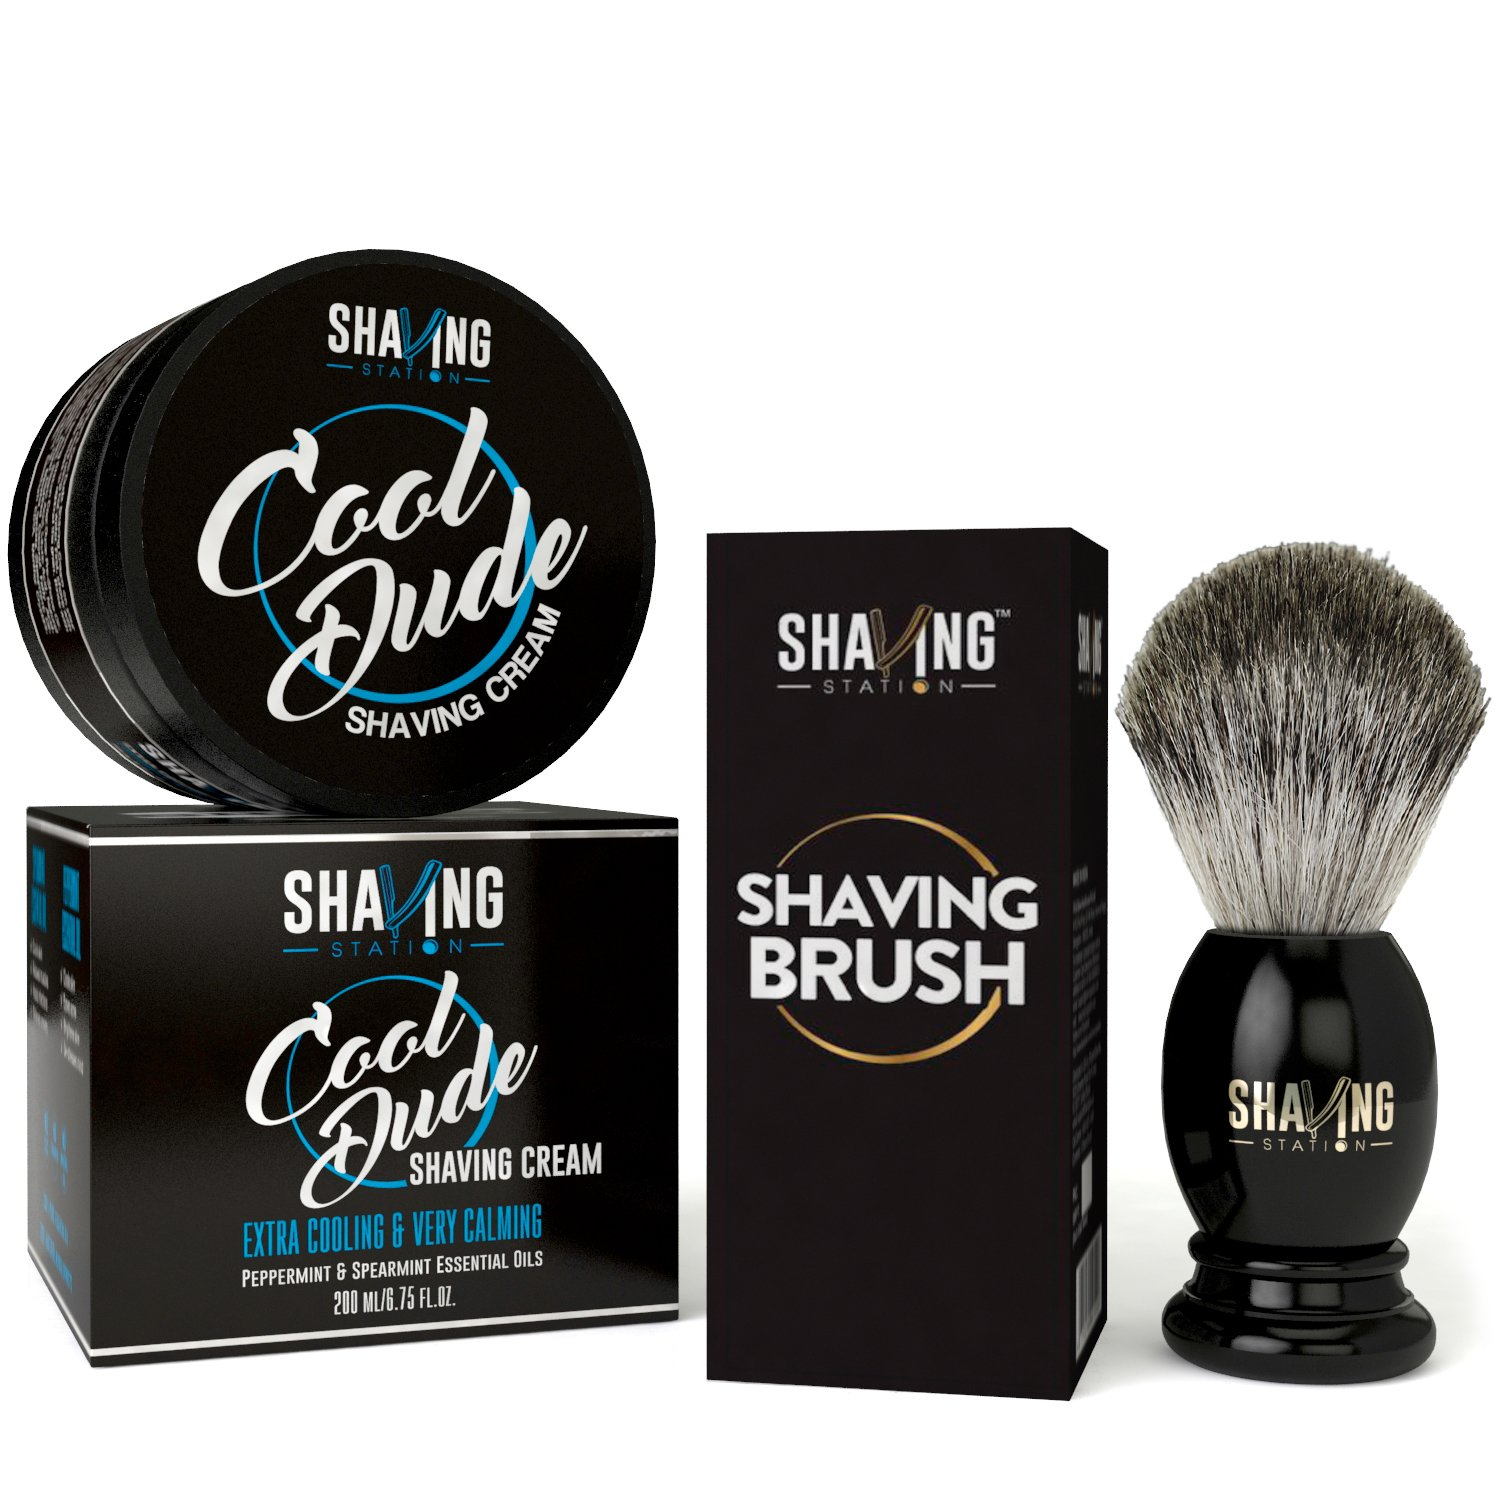 Shaving Station Cool Dude Shaving Cream – 200ml with Shaving Brush low price